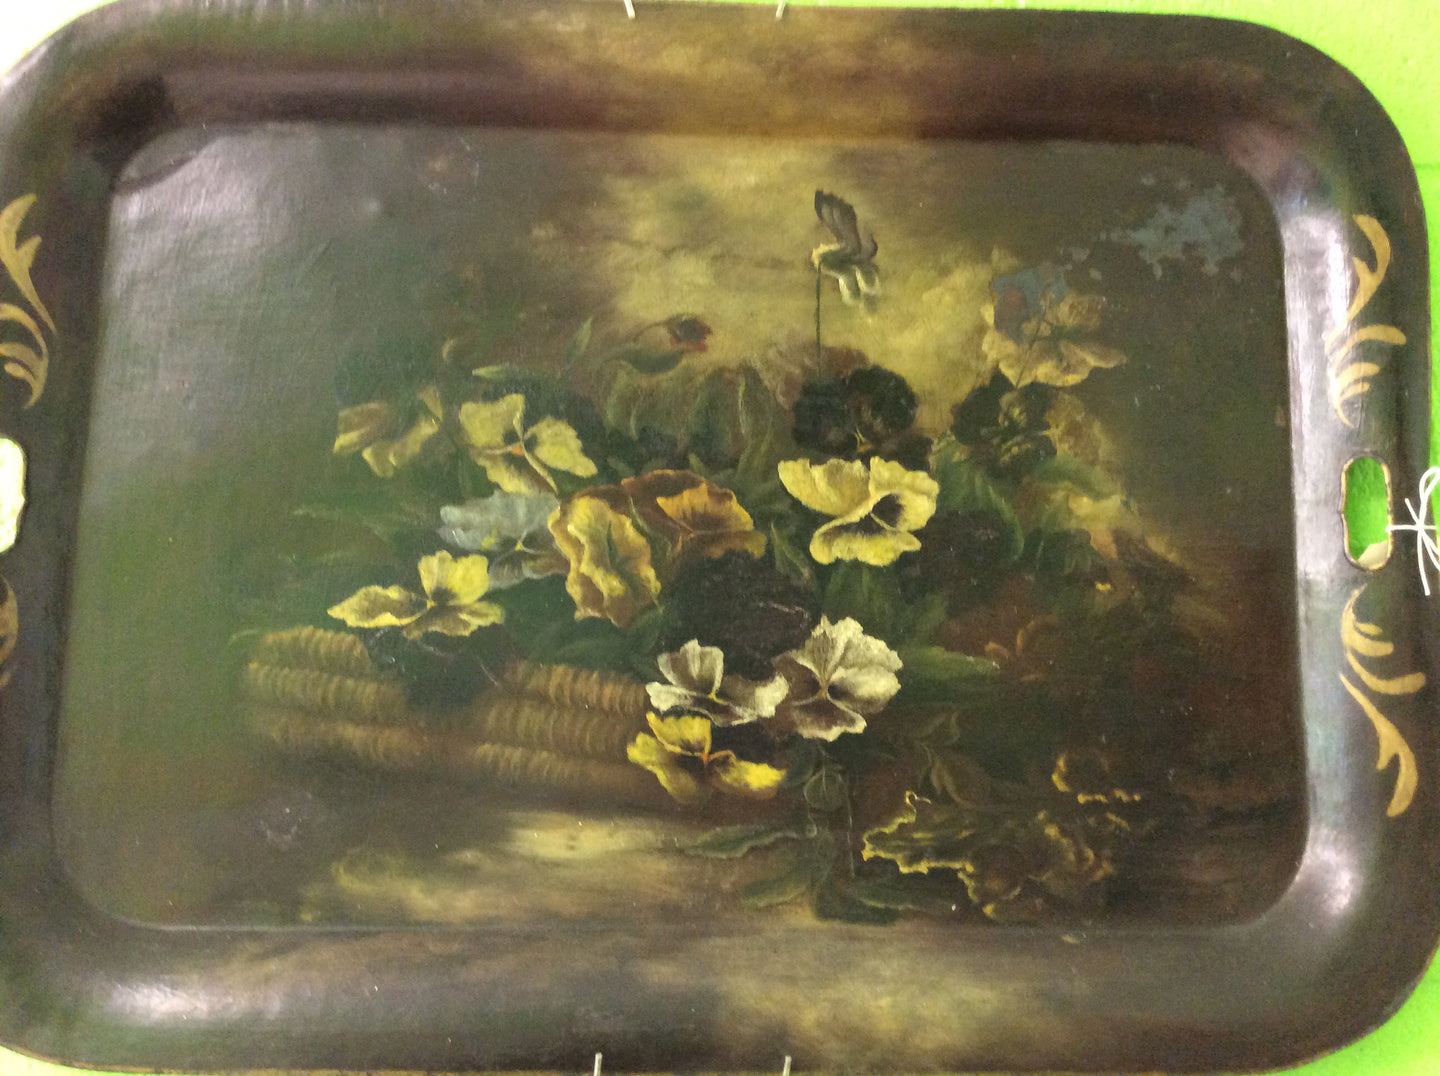 19th Century Toleware Tray - Chestnut Lane Antiques & Interiors